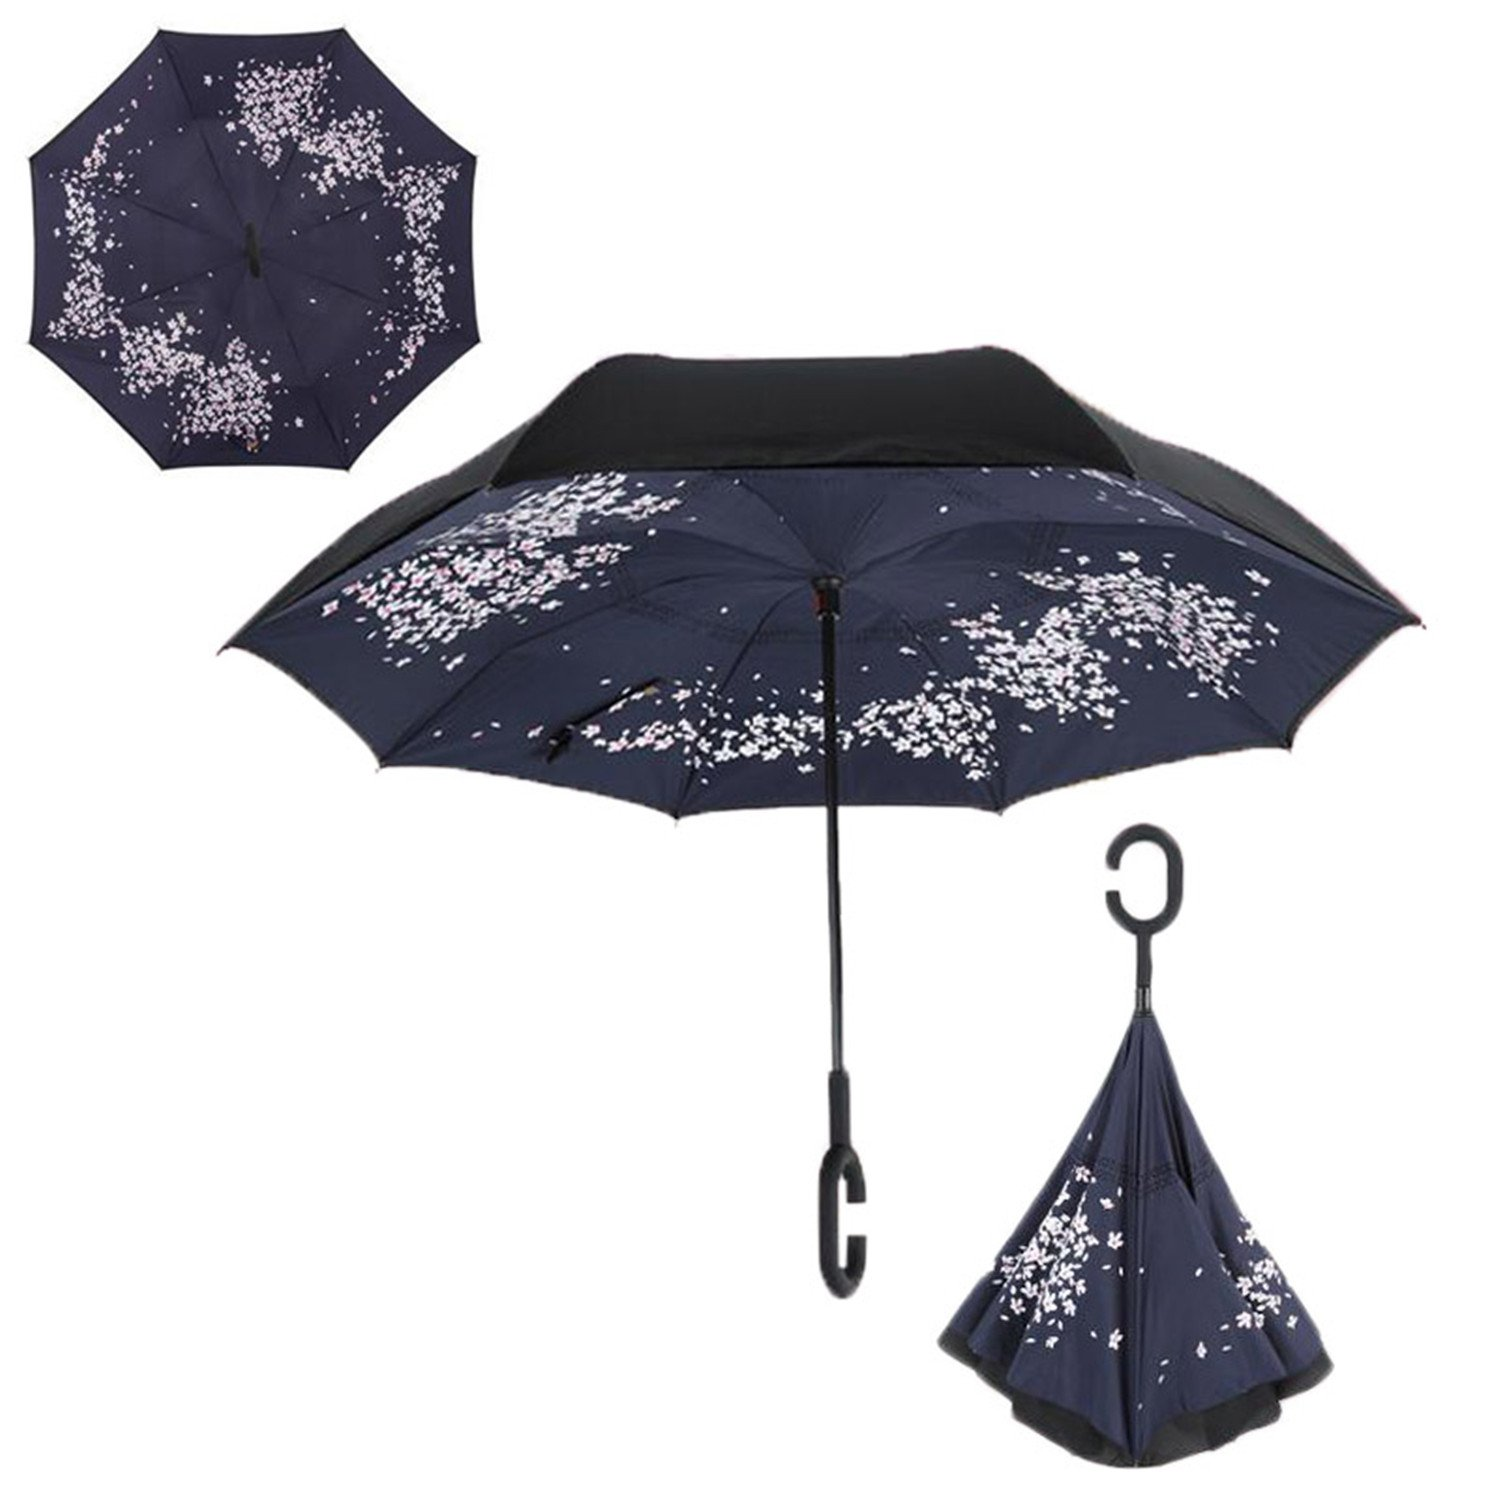 Amazon.com | Soto6ro Folding Reverse Umbrella Double Layer Inverted Windproof Rain Car Umbrellas For Women Cherry Blossoms | Umbrellas